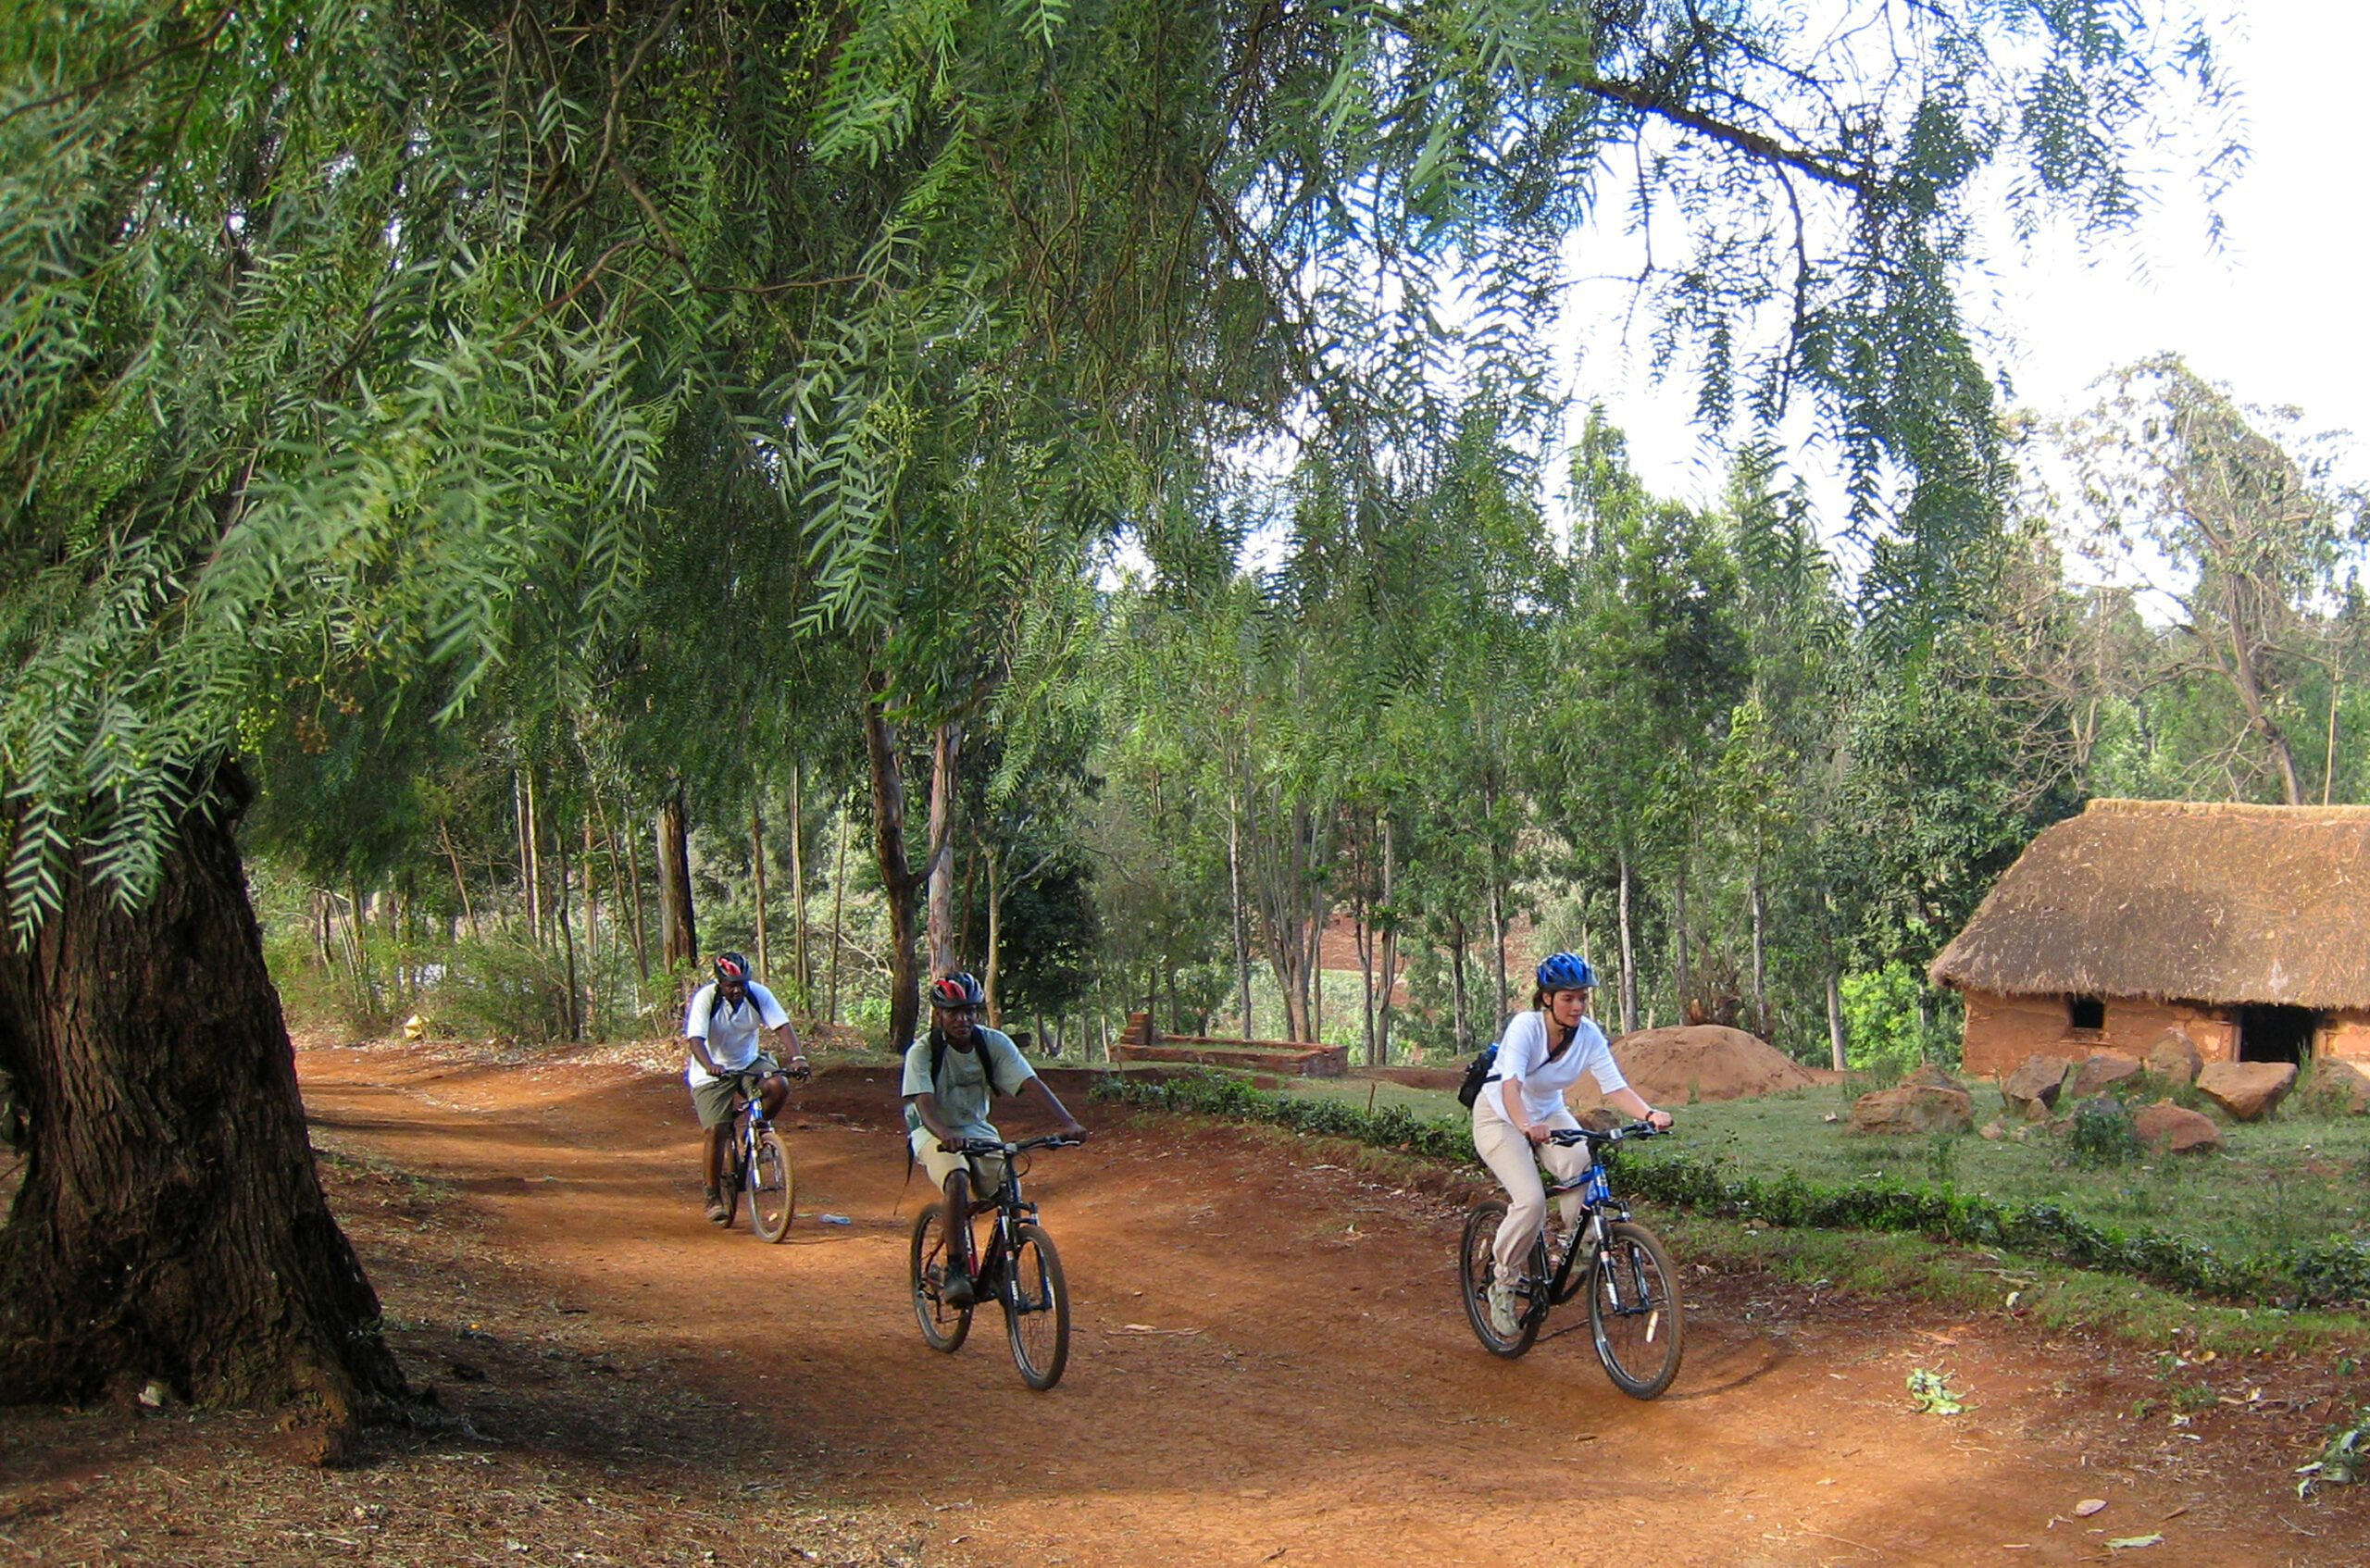 guests on a biking vacation in tloma village tanzania